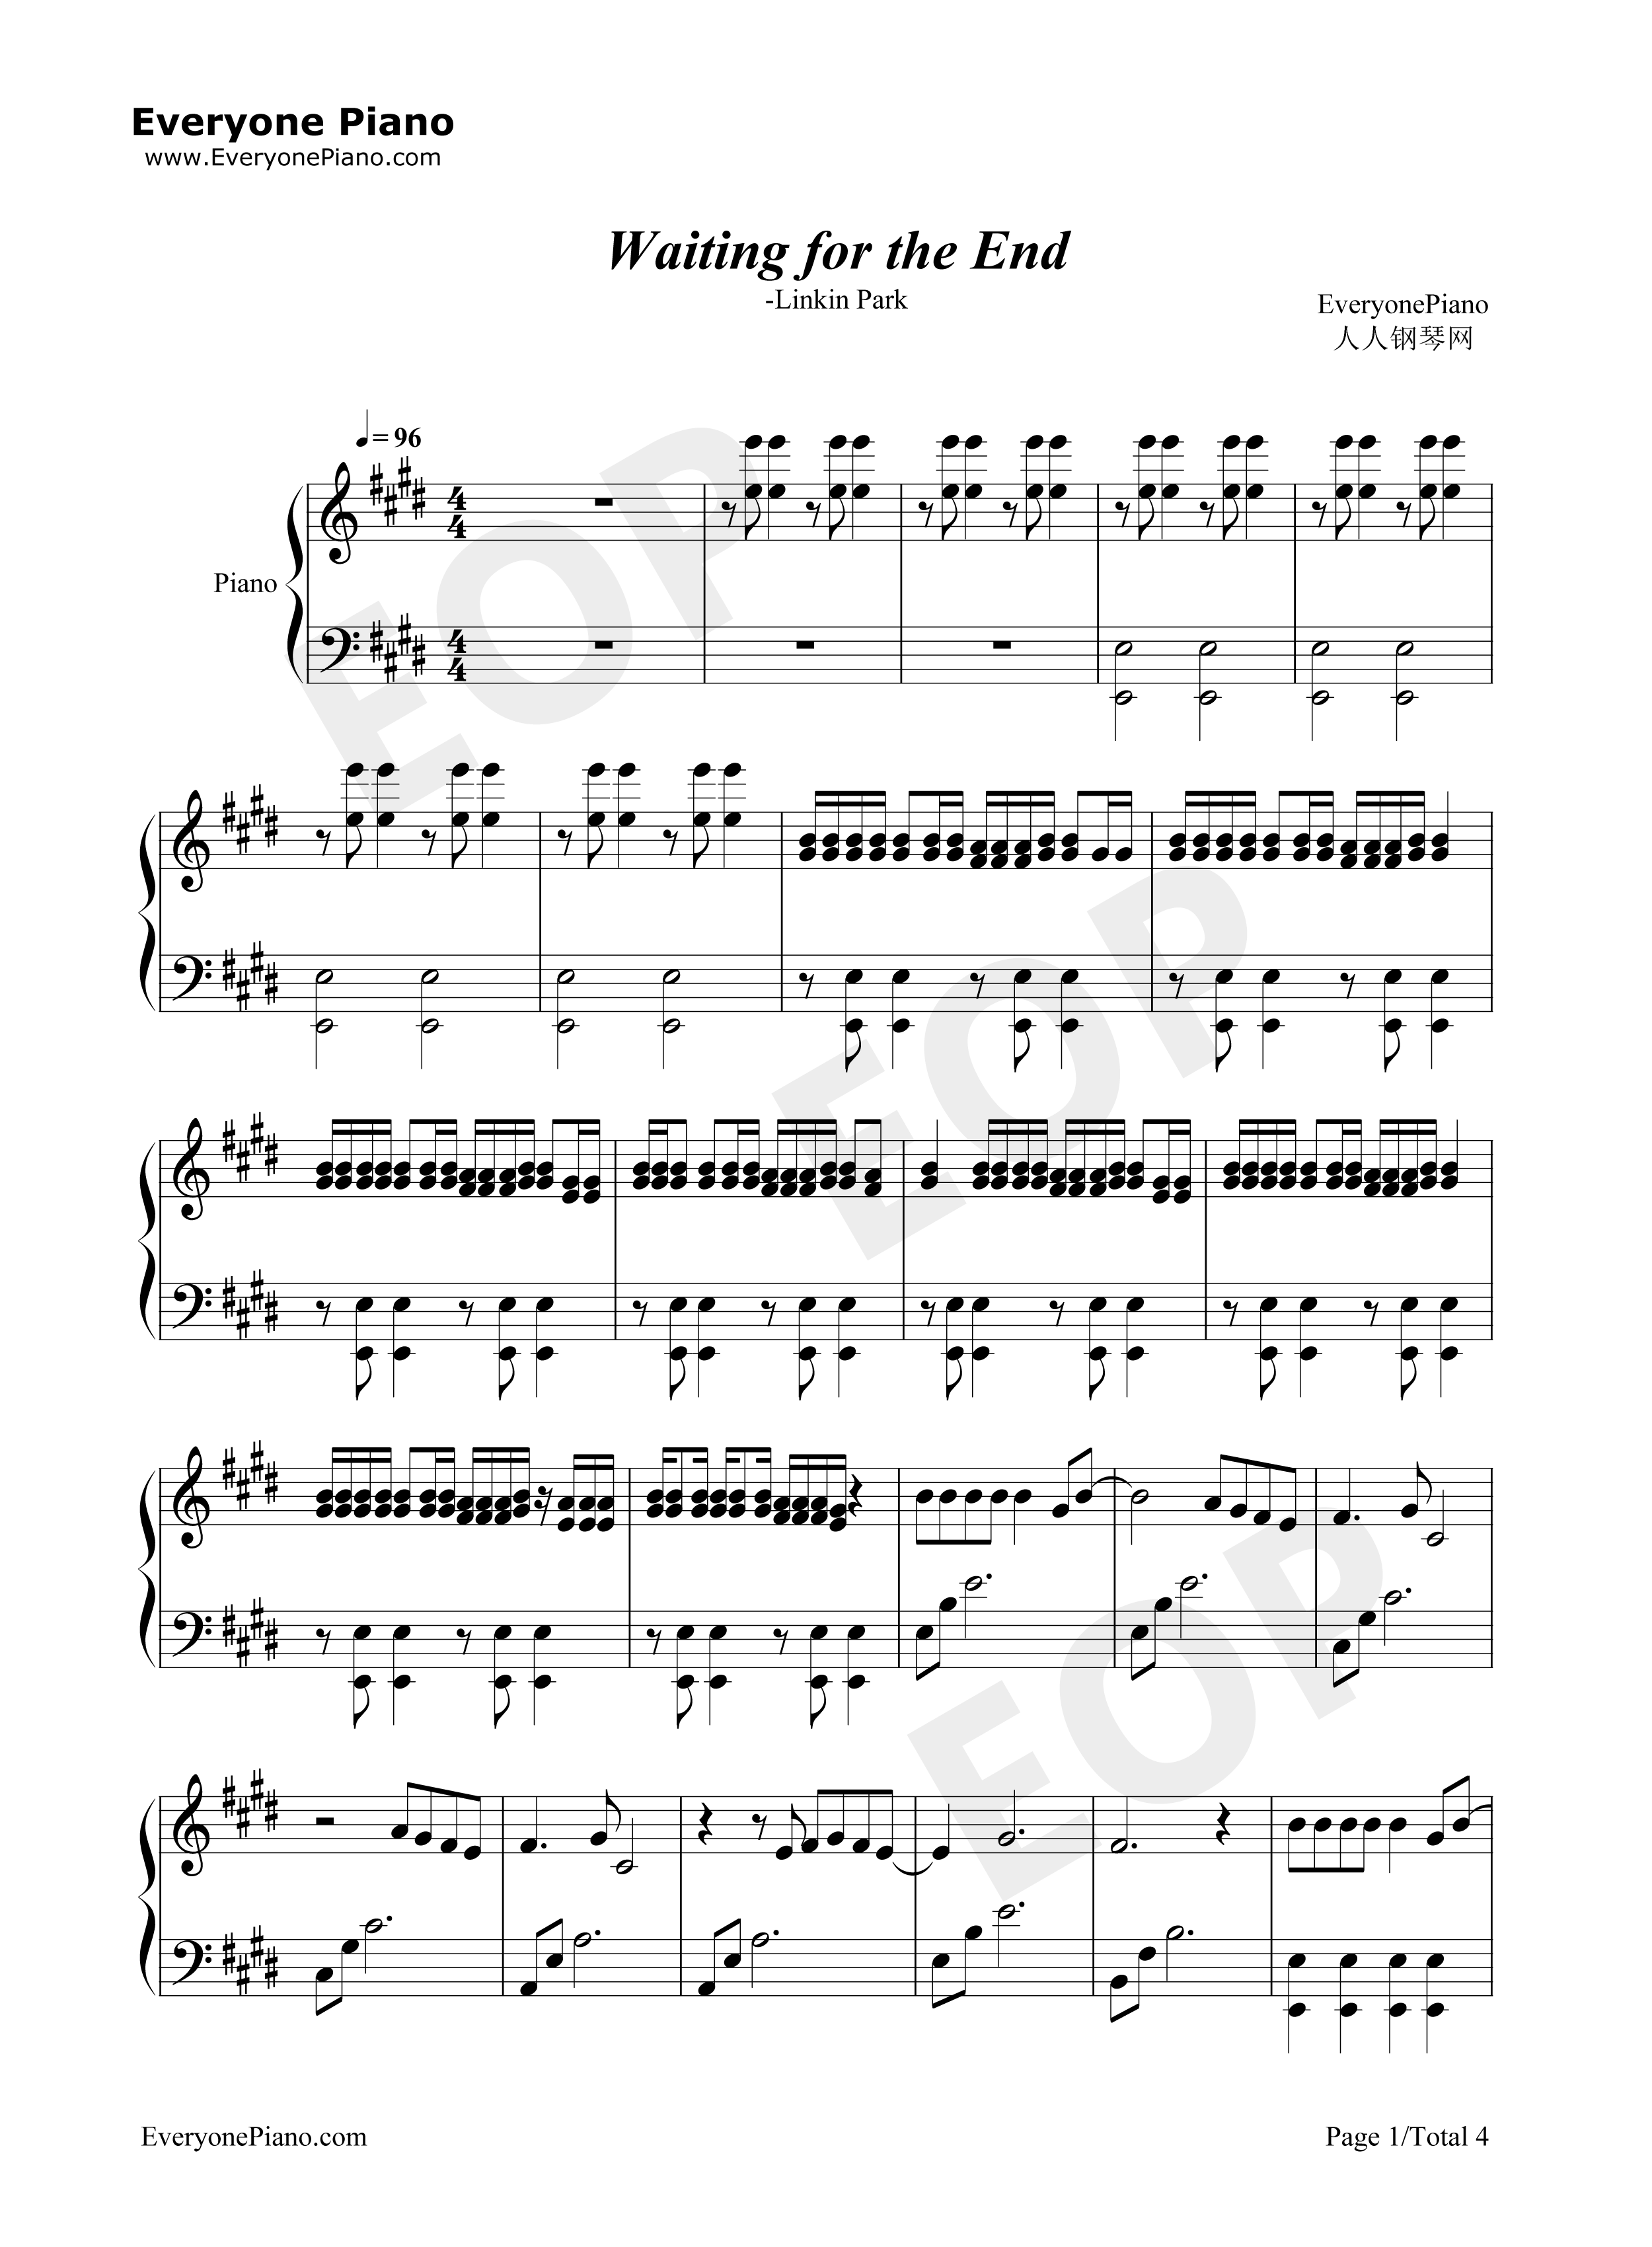 Waiting for the end linkin park stave preview 1 free piano sheet listen now print sheet waiting for the end linkin park stave preview 1 hexwebz Gallery